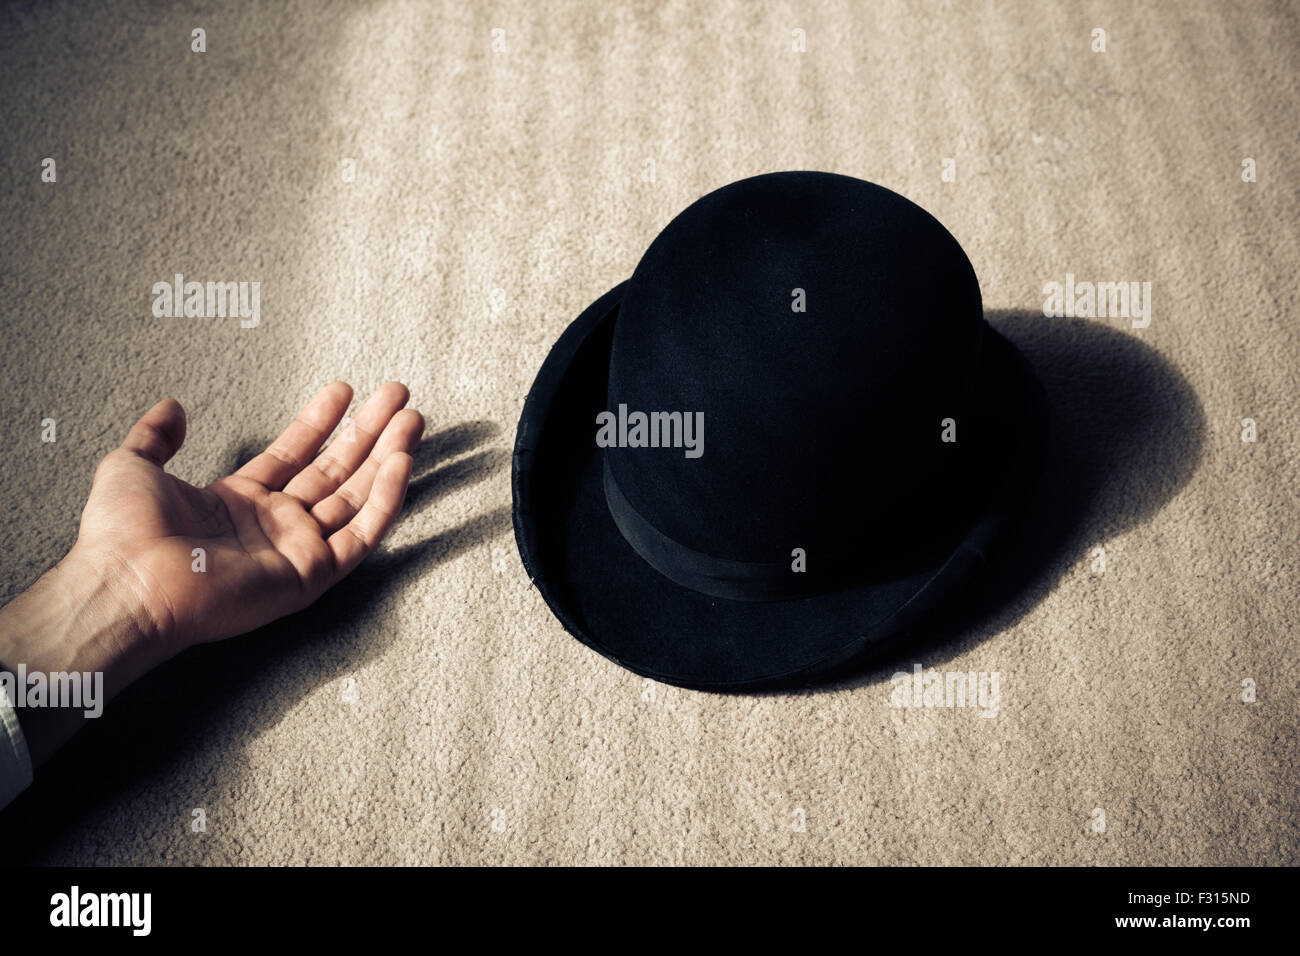 A man is lying dead on the floor with his hat next to him - Stock Image